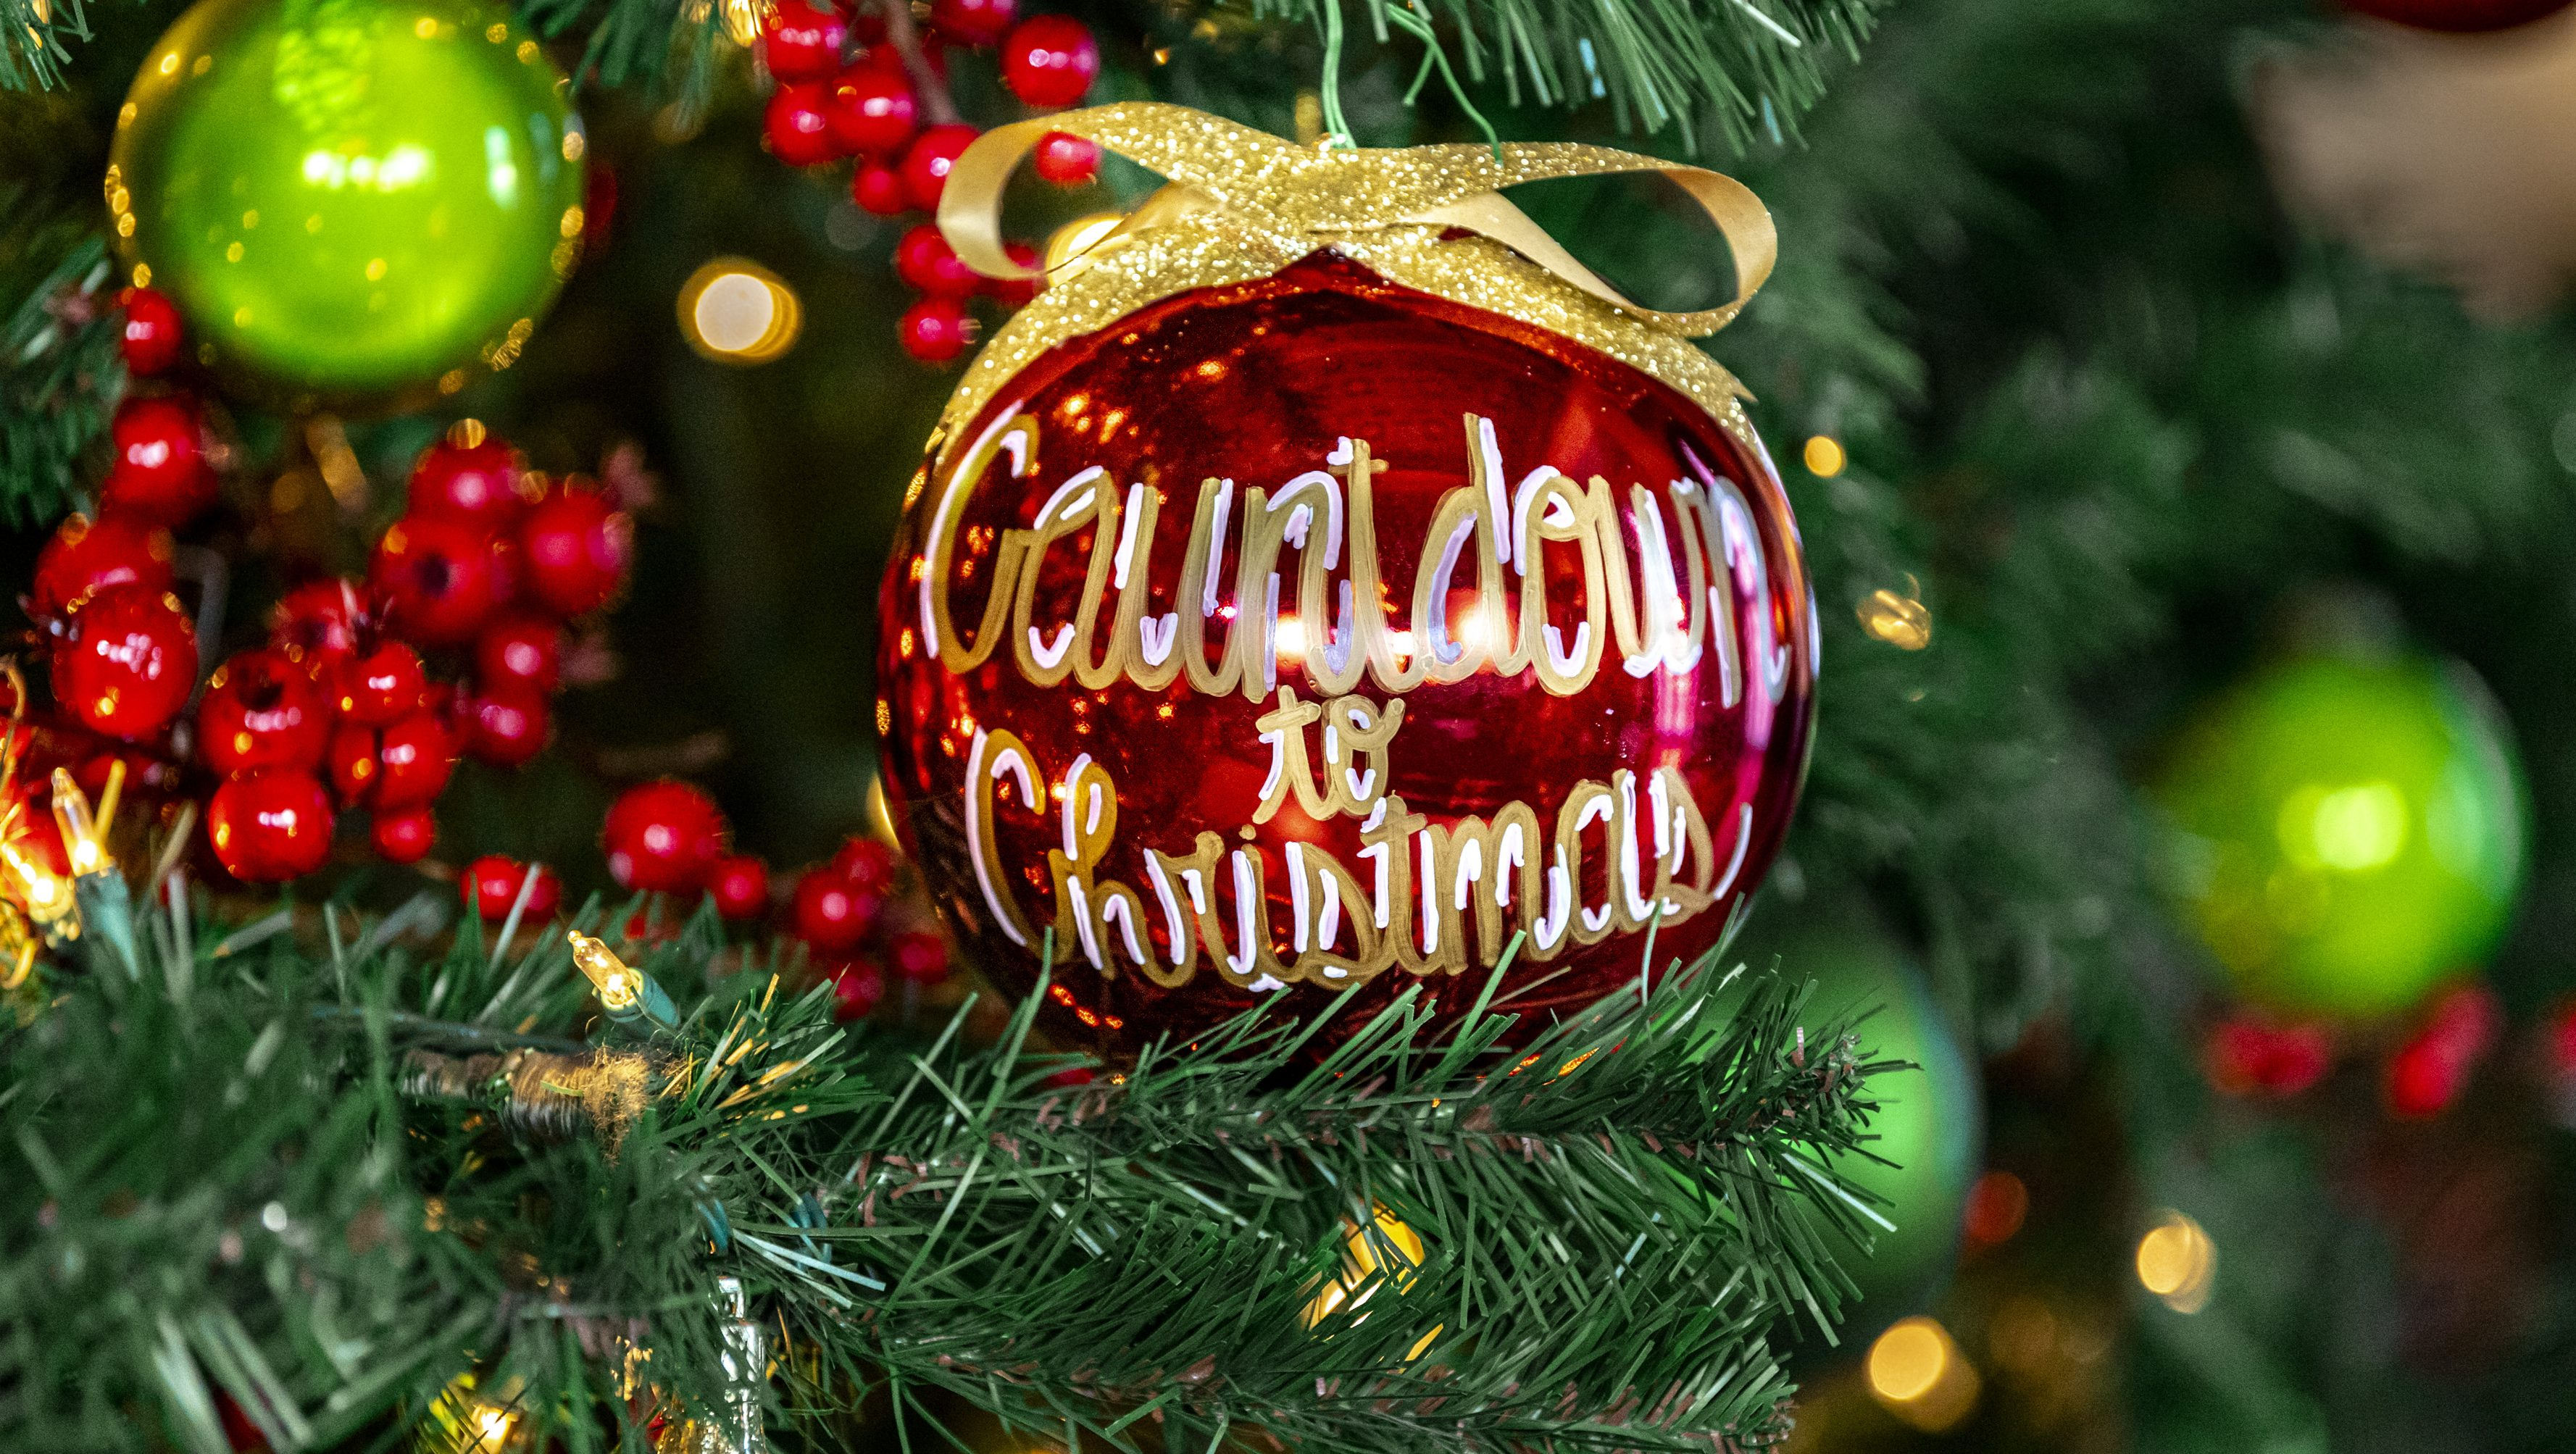 Hallmark S 2020 Christmas Preview How To Watch Online Live Heavy Com